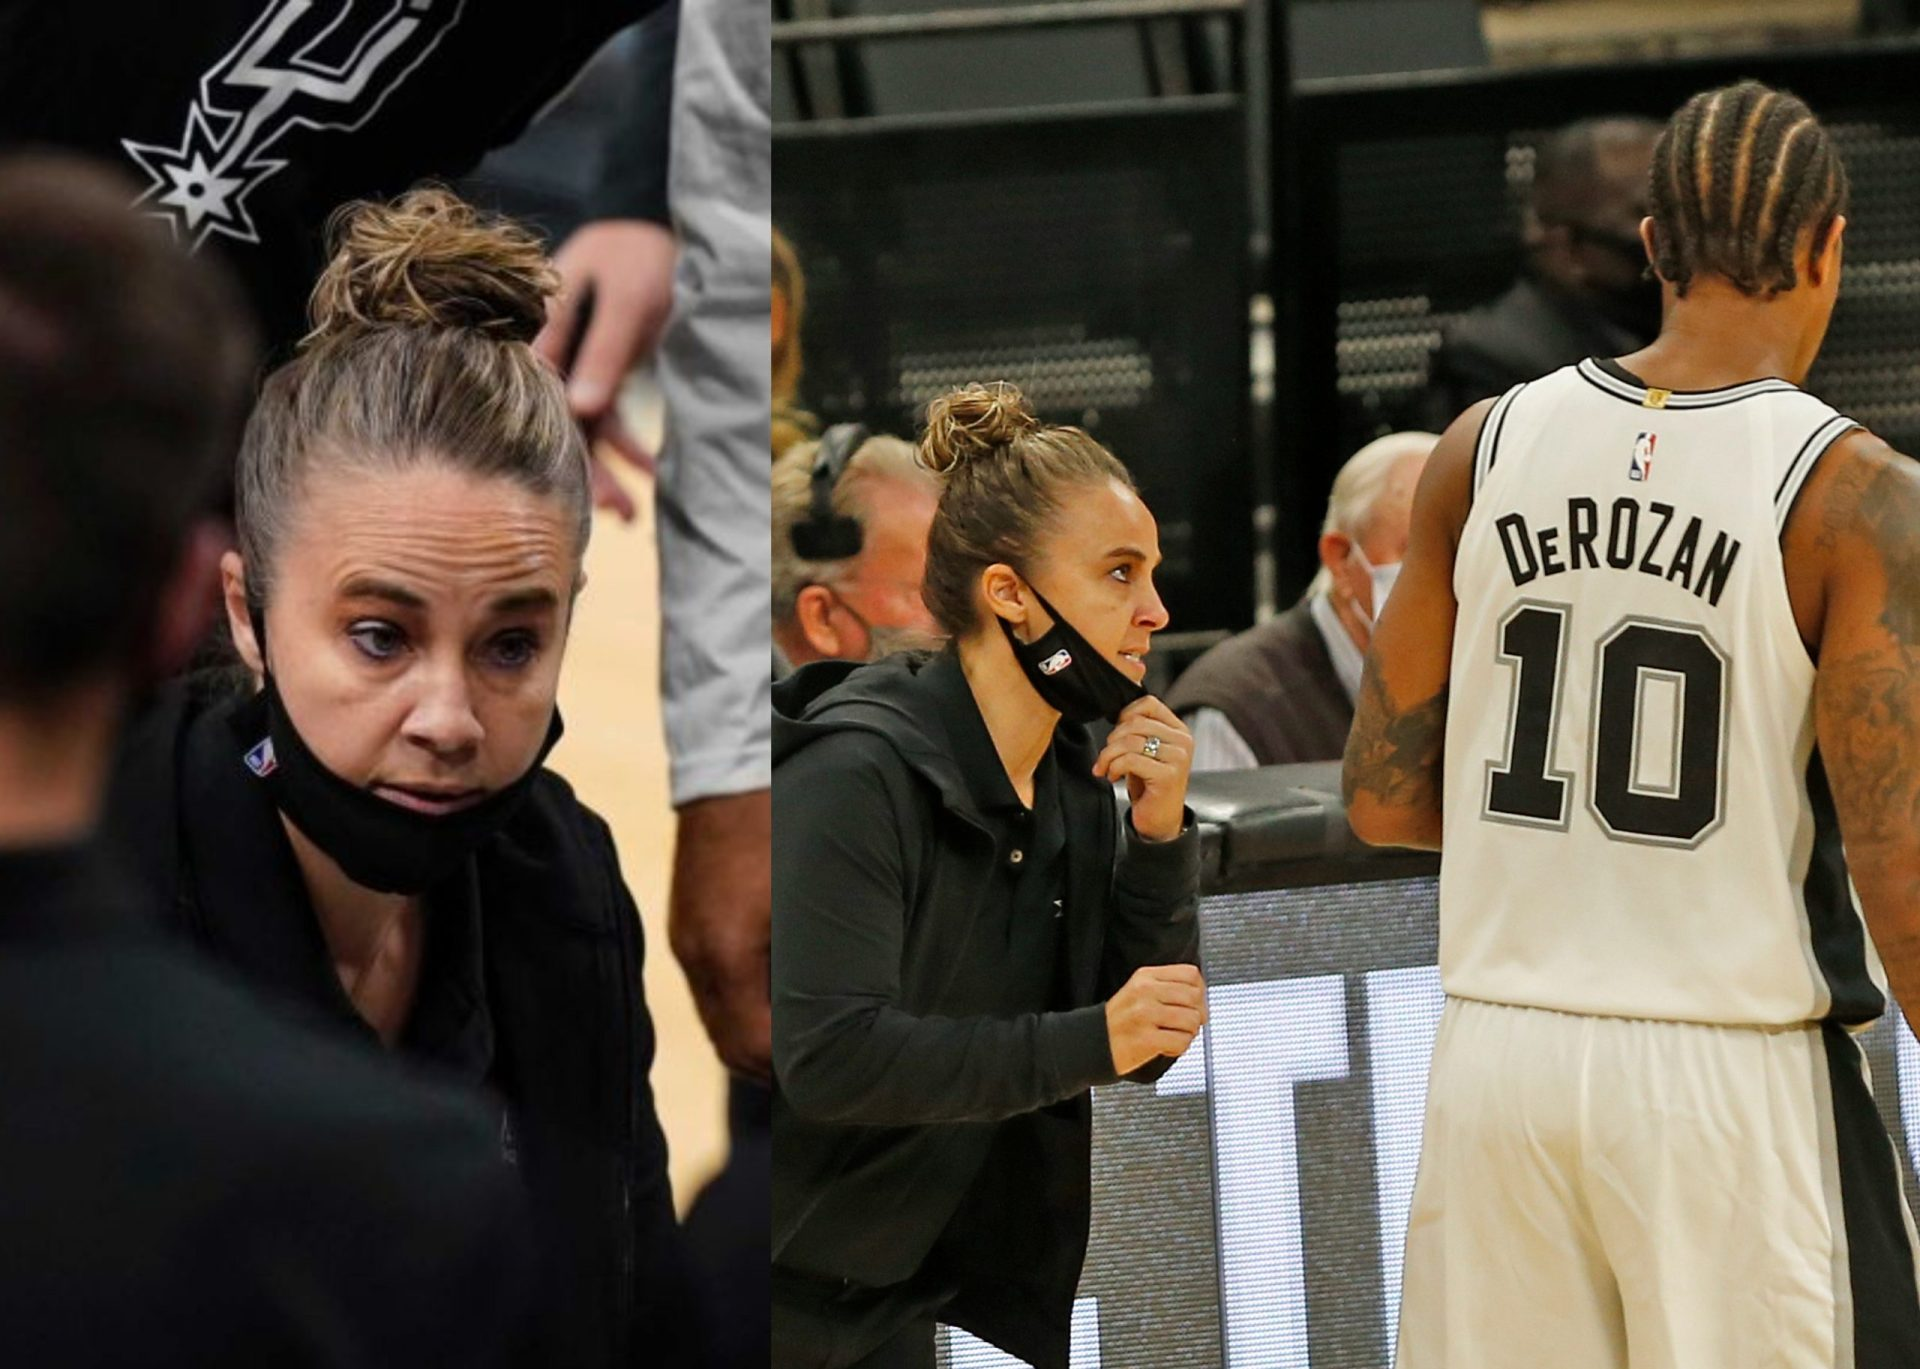 Becky Hammon becomes the first woman NBA coach following the ejection of Gregg Popovich - THE SPORTS ROOM